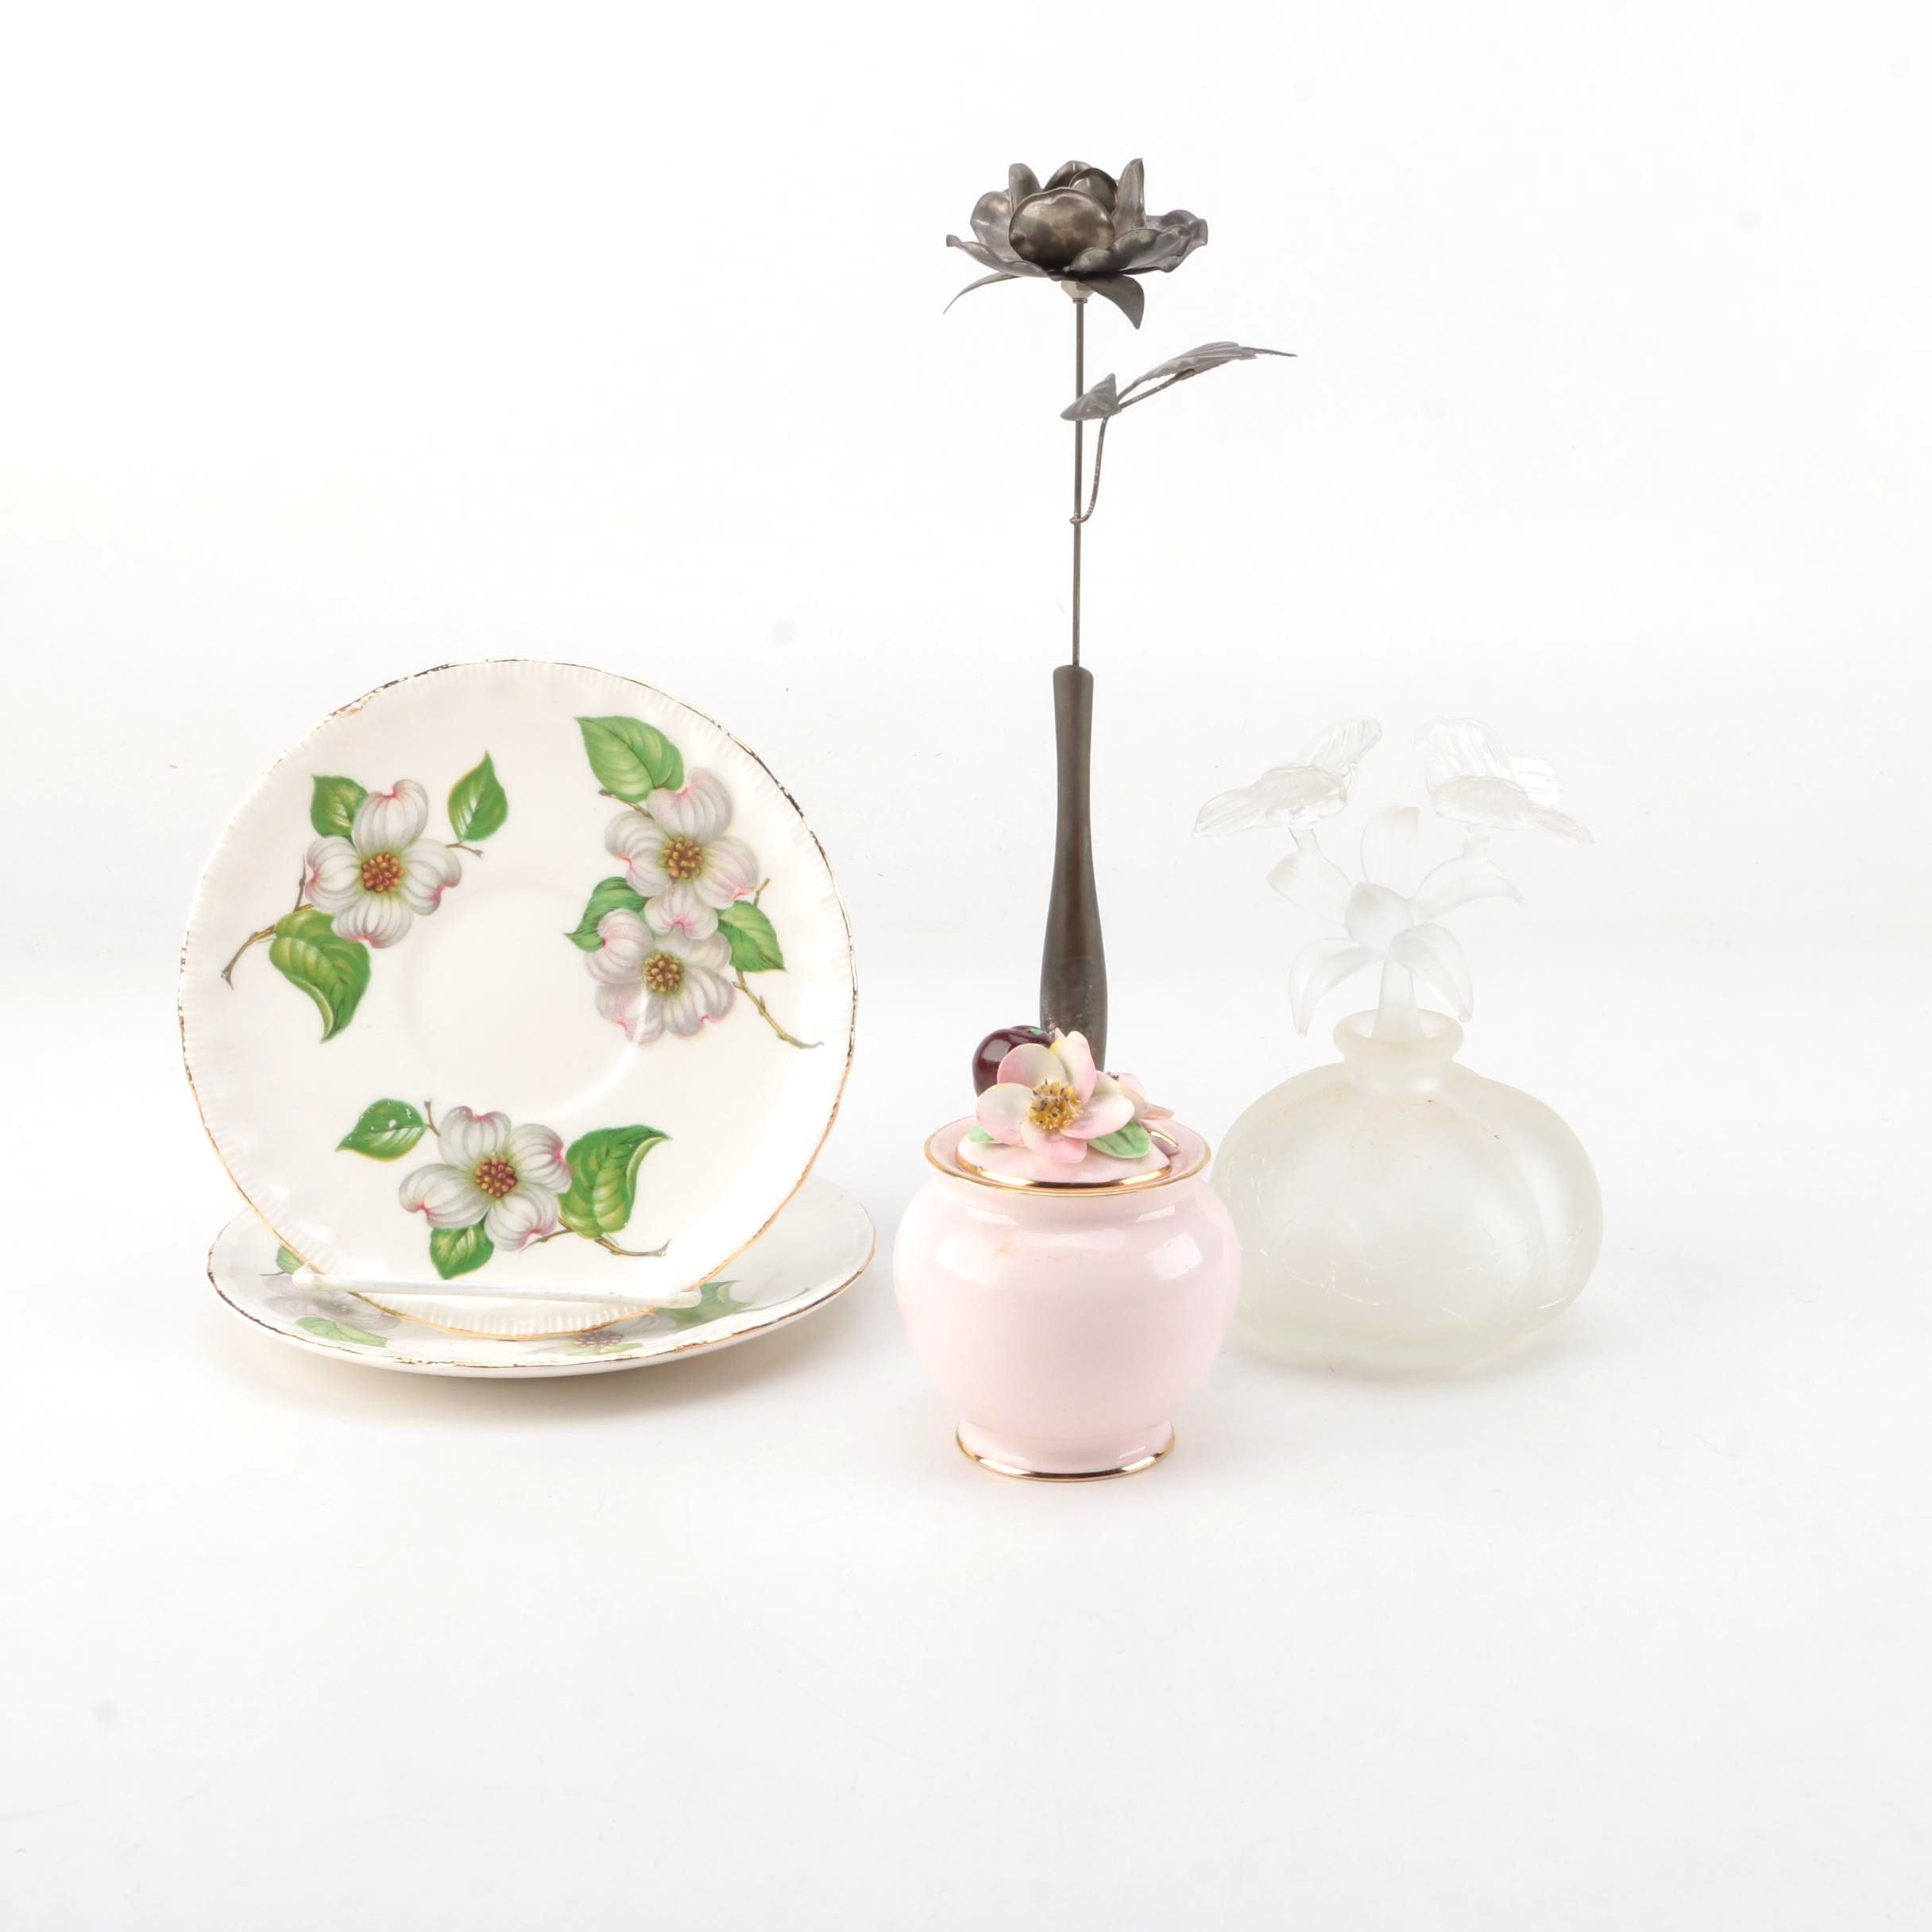 Floral Theme Decorative Scent Bottle and Other Items